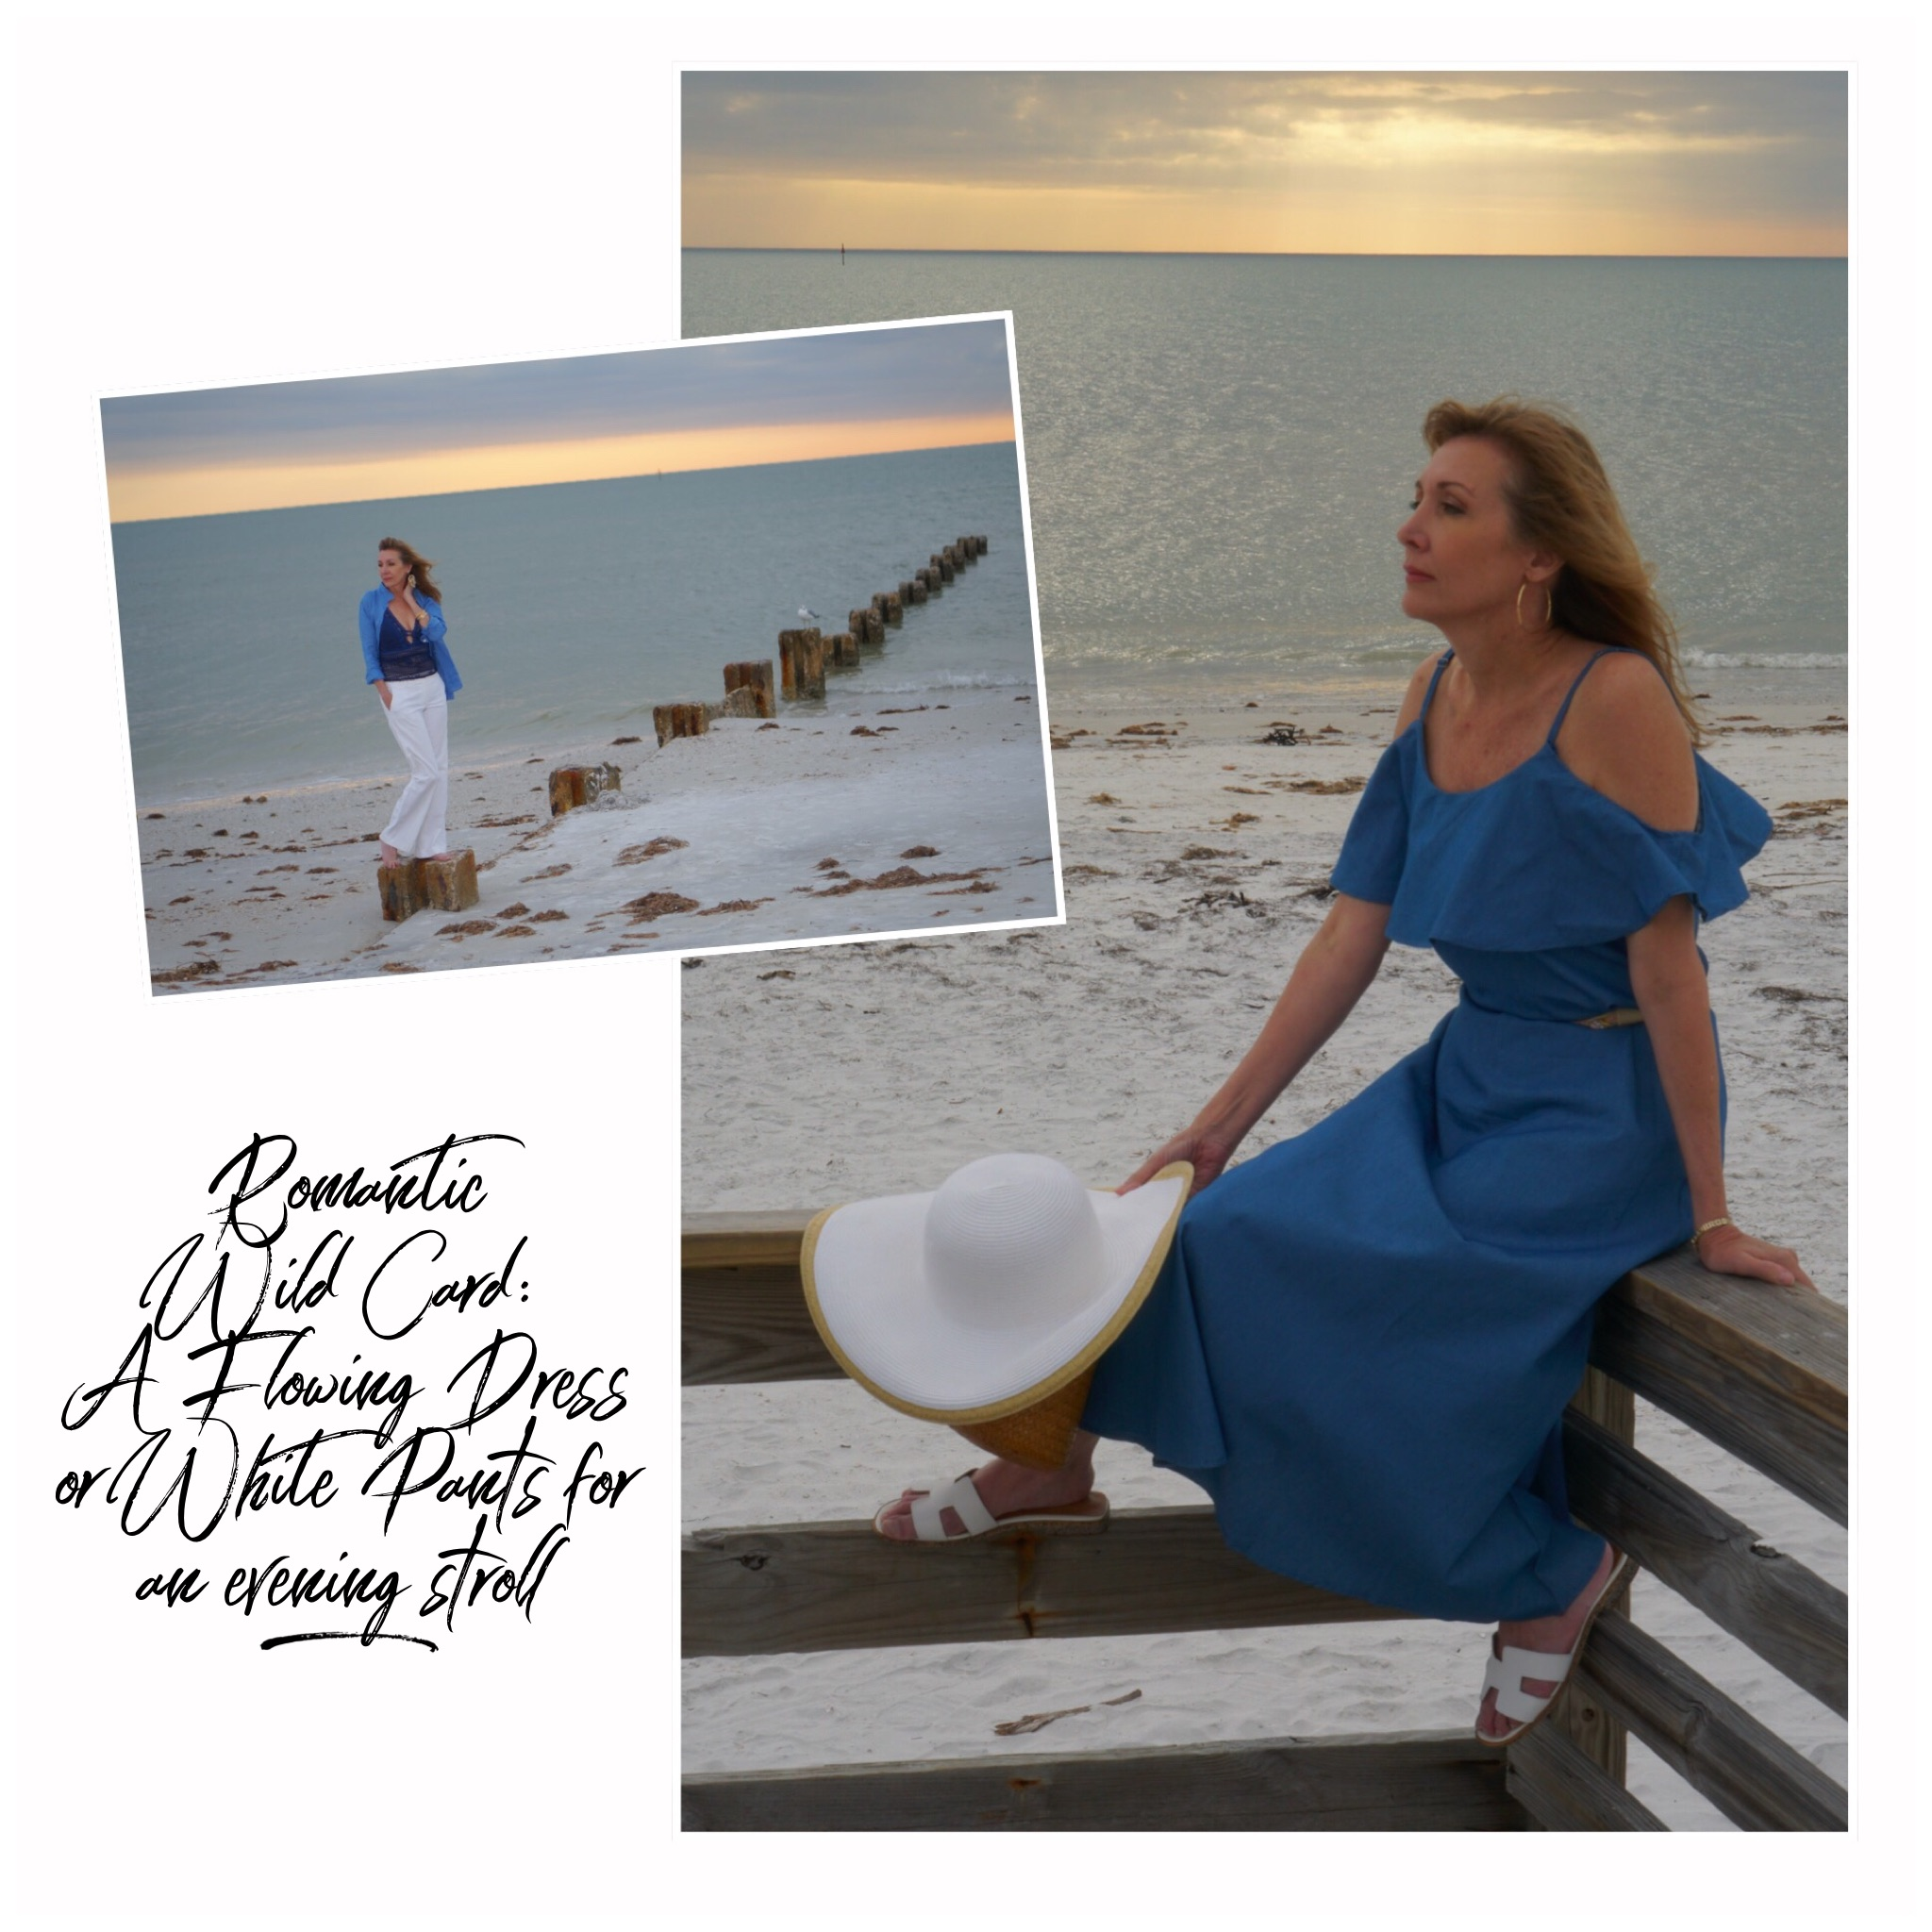 Collage: Woman in blue sun dress, woman in white pants and blue shirt